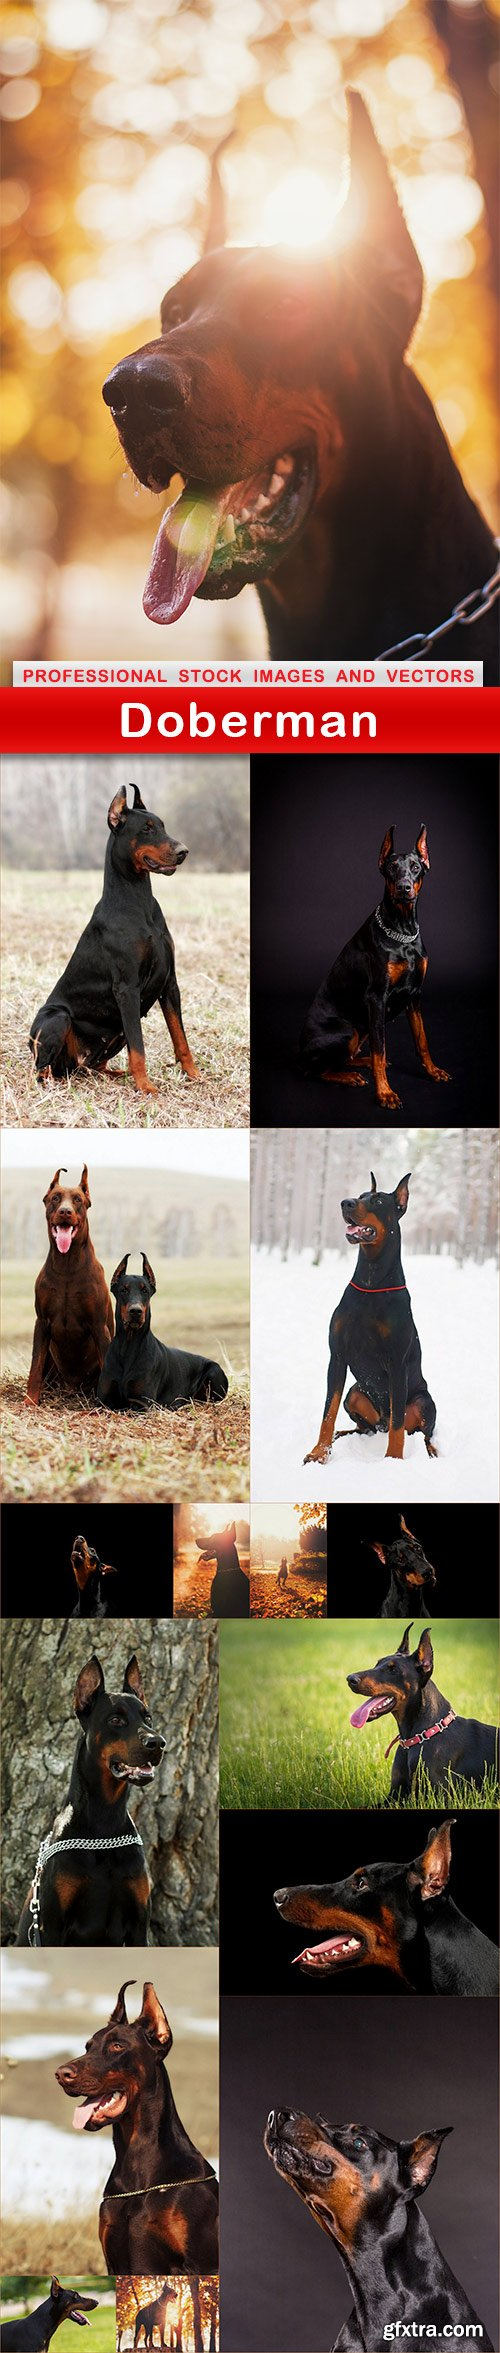 Doberman - 16 UHQ JPEG